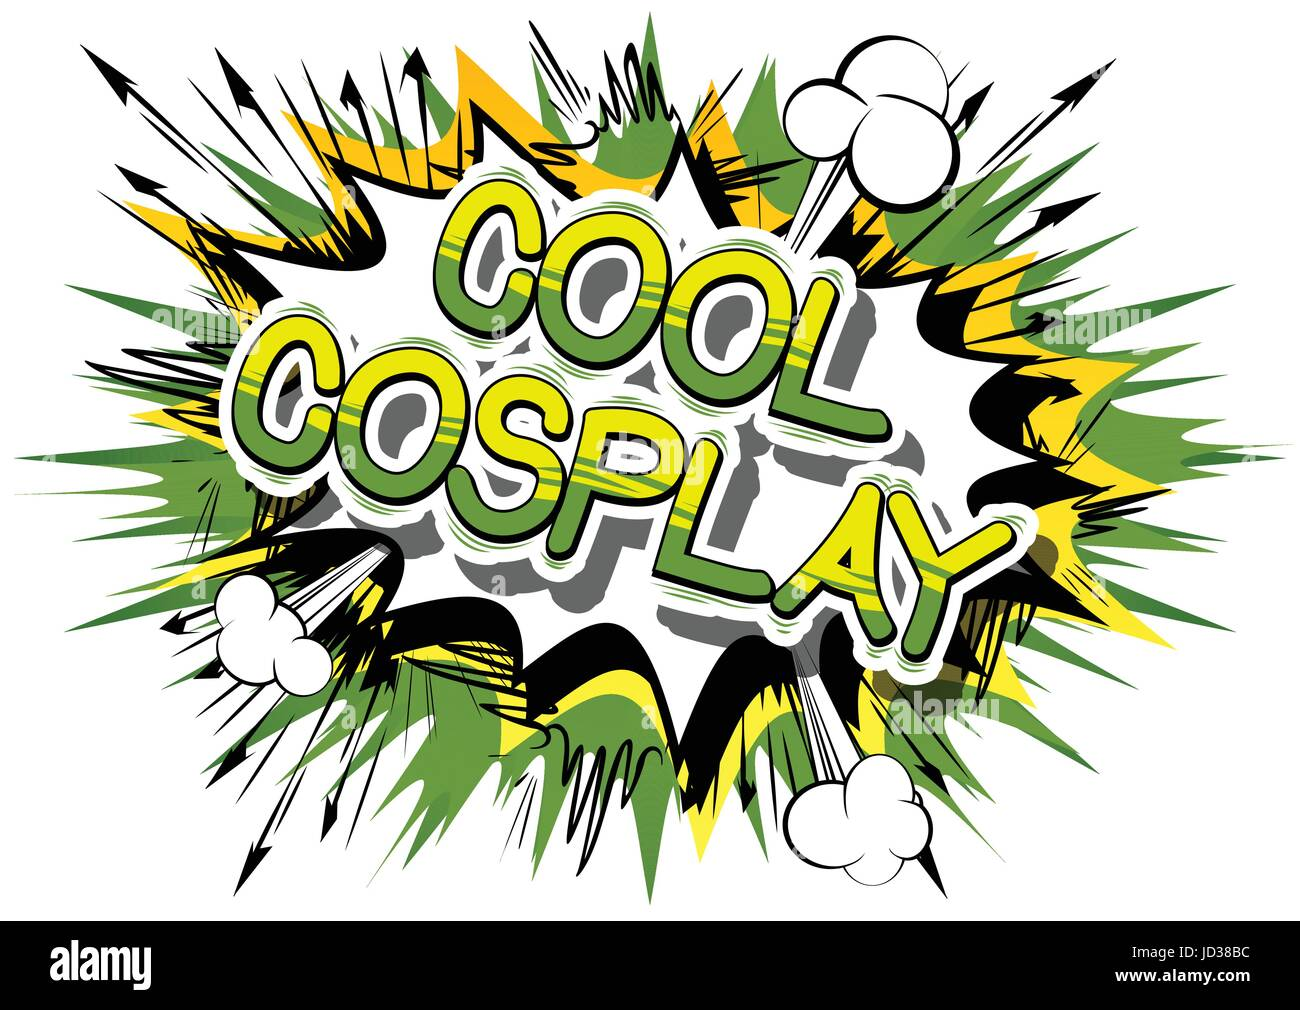 Cool Cosplay - Comic book style word on abstract background. - Stock Image